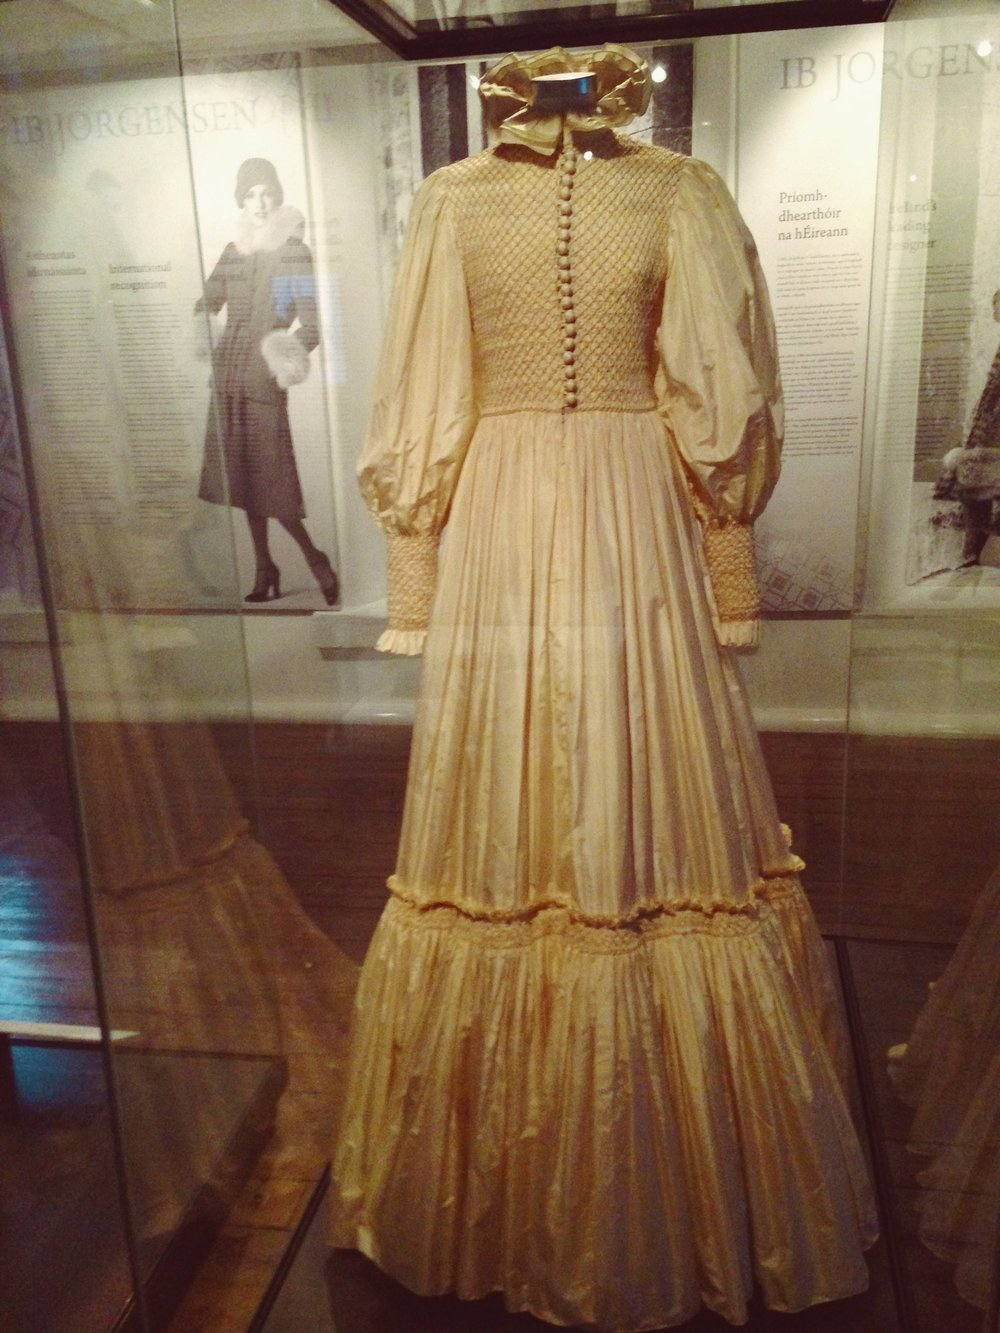 Wedding Dress by Ib Jorgensen at National museum of Ireland!